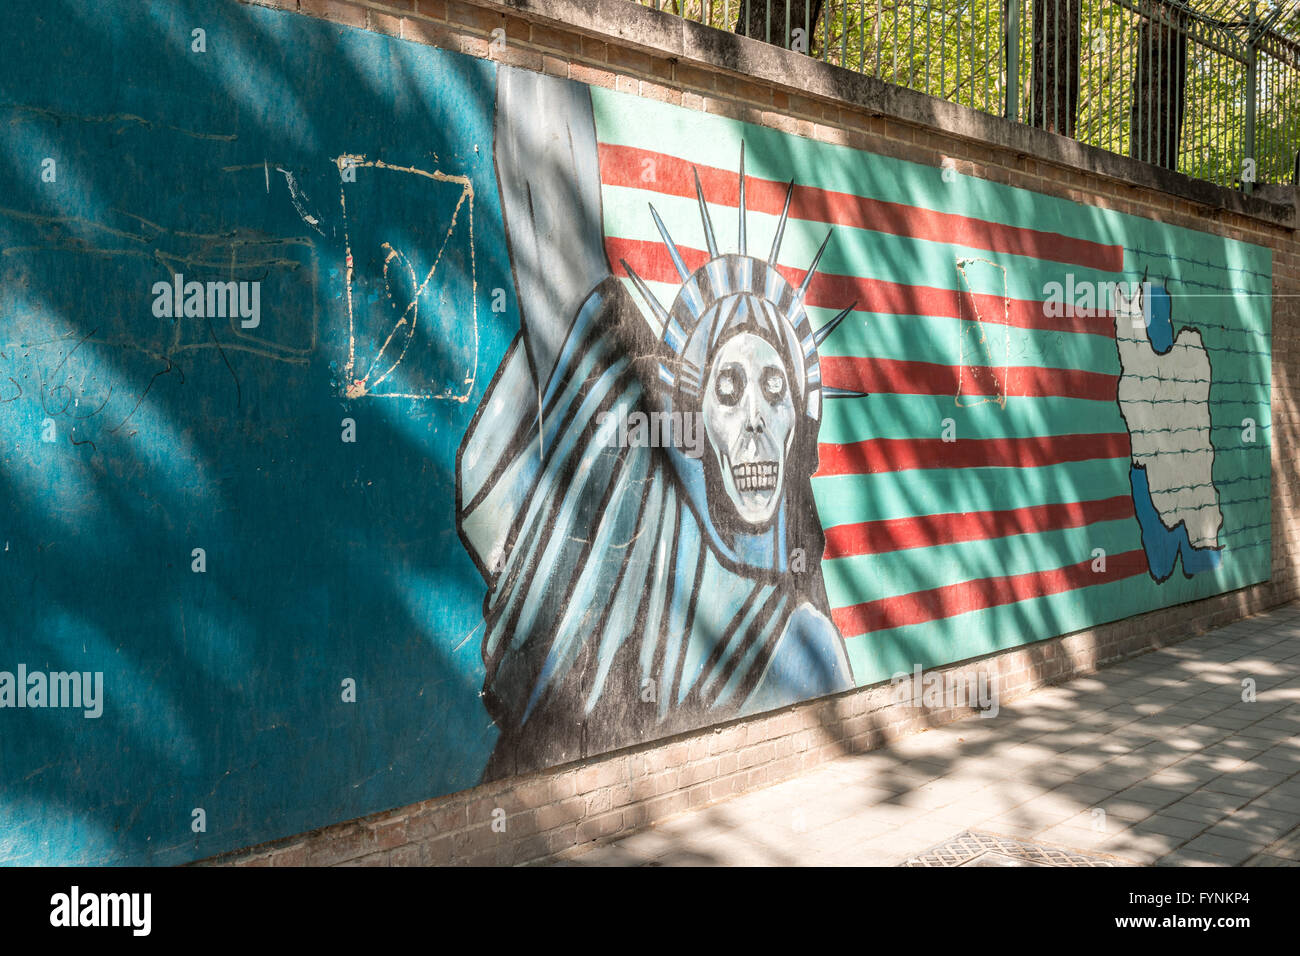 Anti-American sign from the Iranian Revolution in front of the former American Embassy. - Stock Image